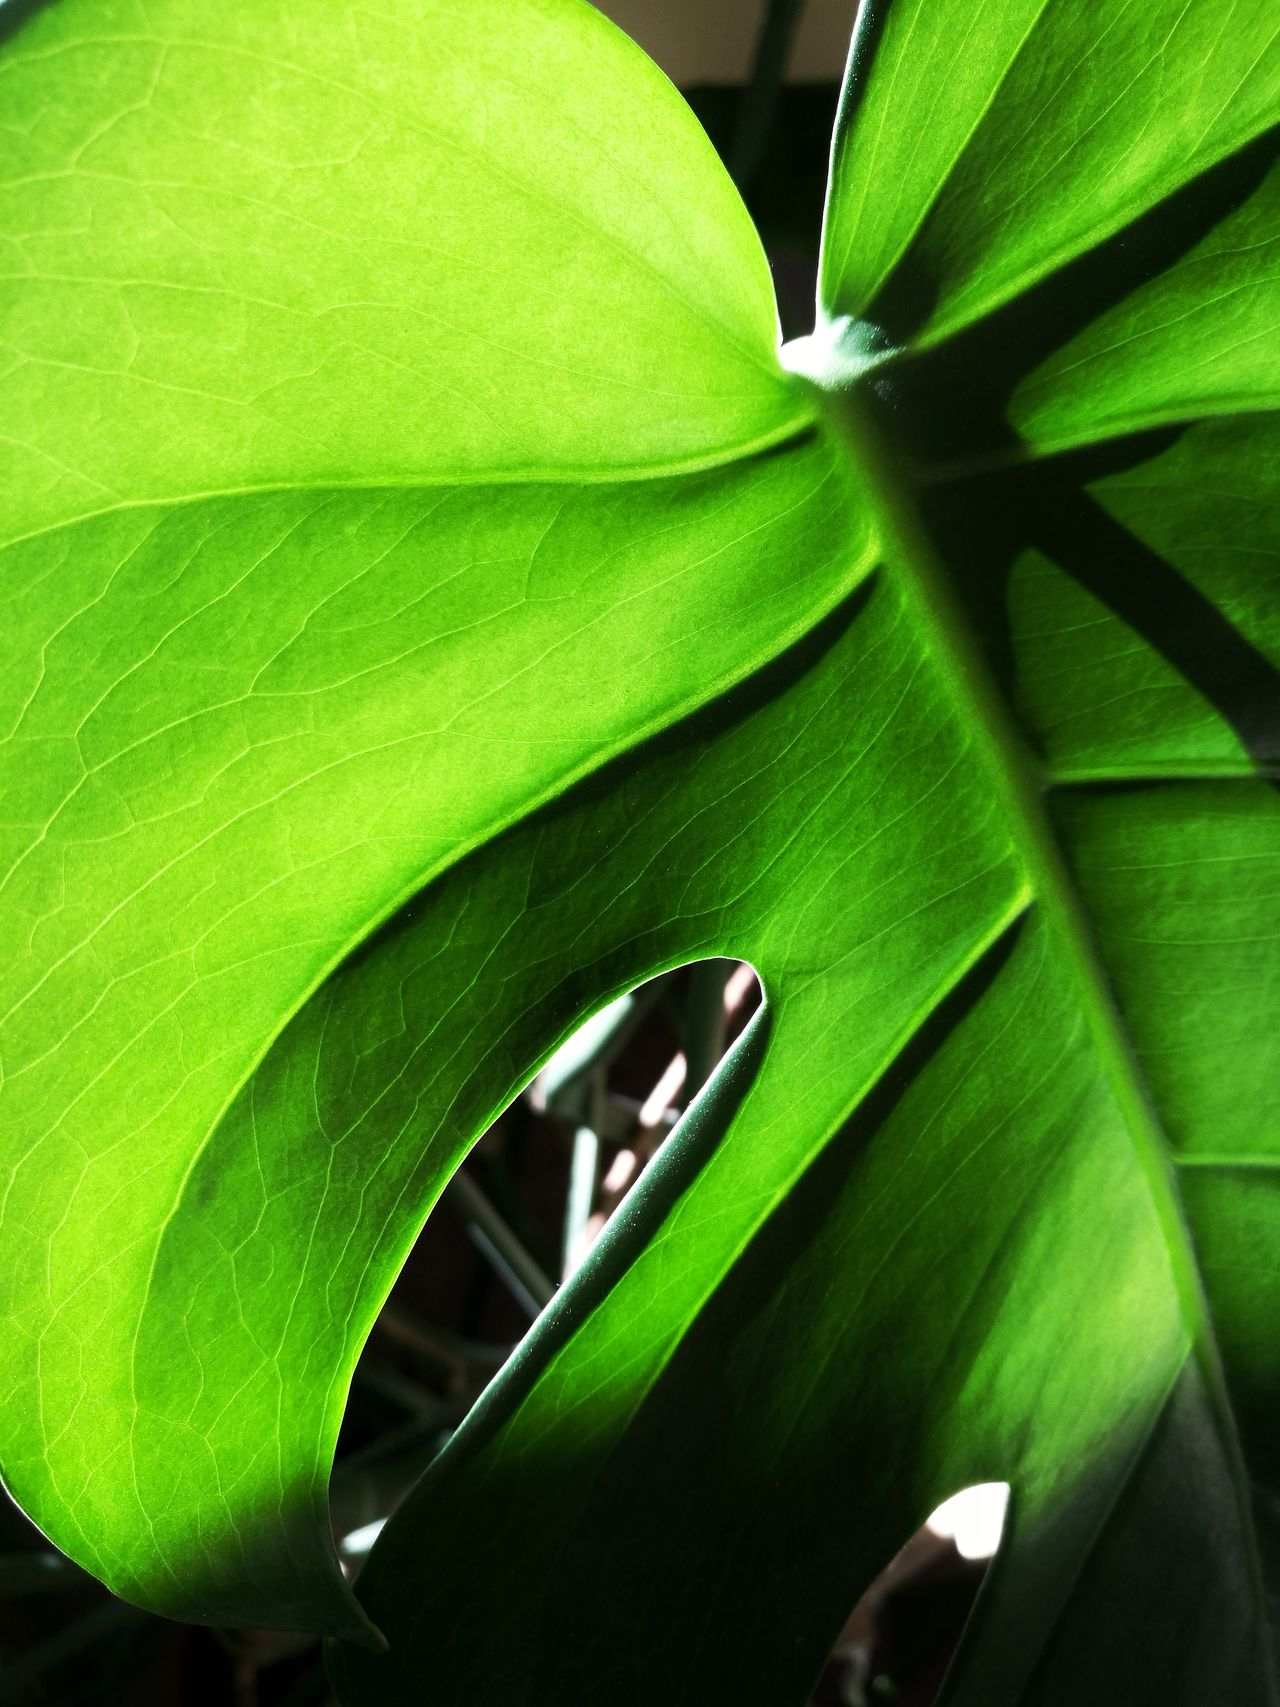 nr.86Leaf Green Color Close-up Nature Plant No People Growth TheWeekOnEyeEM Freshness Outdoors Plants Plants Collection Plants And Garden Green Plant Green Nature Growing Plants Nature Growing Colors Green Color Green Monster Monsters Beauty In Nature Day